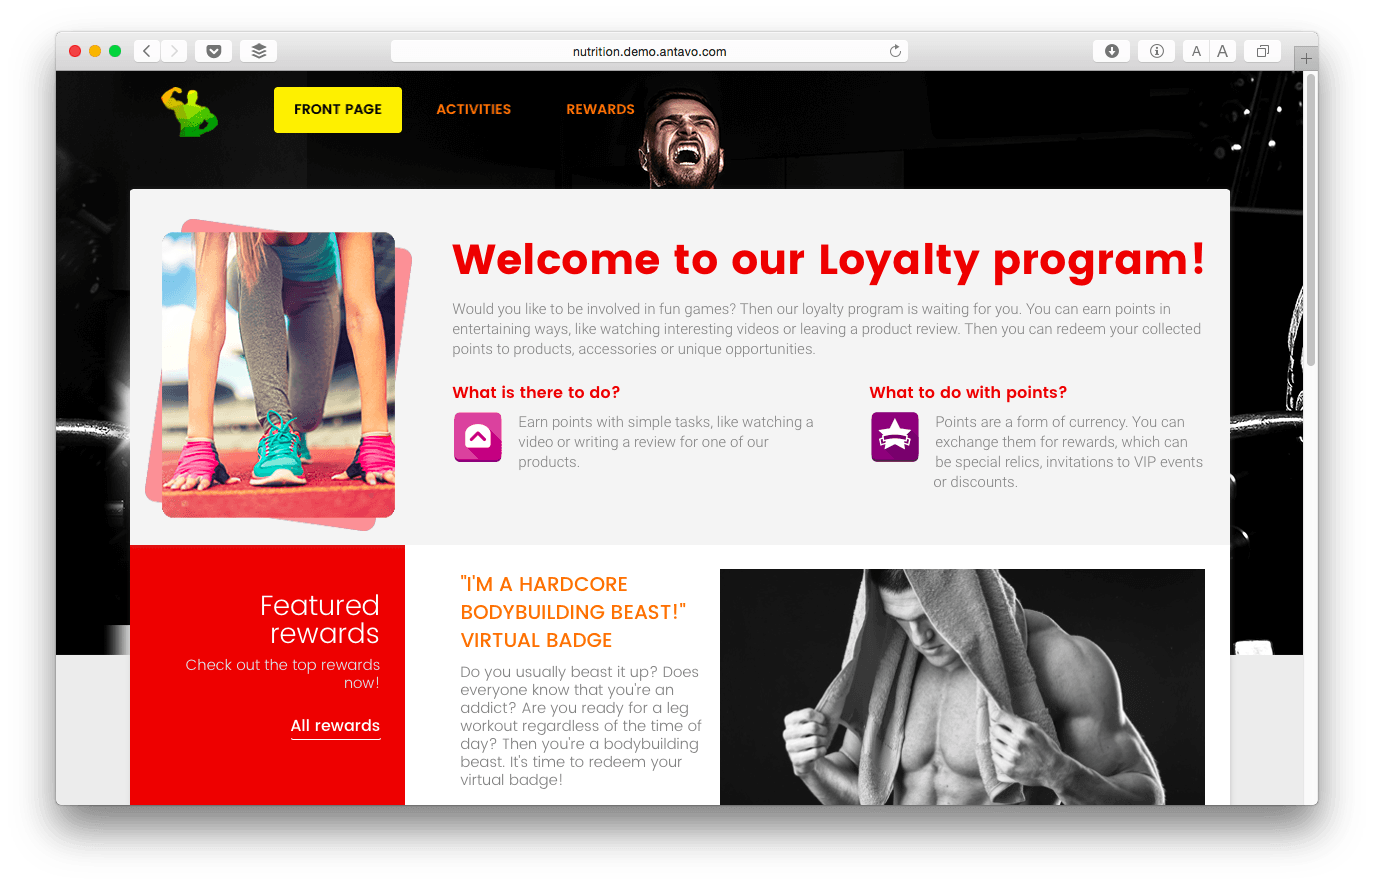 Shop.Builder's loyalty program has similar features as this demo page from Antavo Loyalty Software.